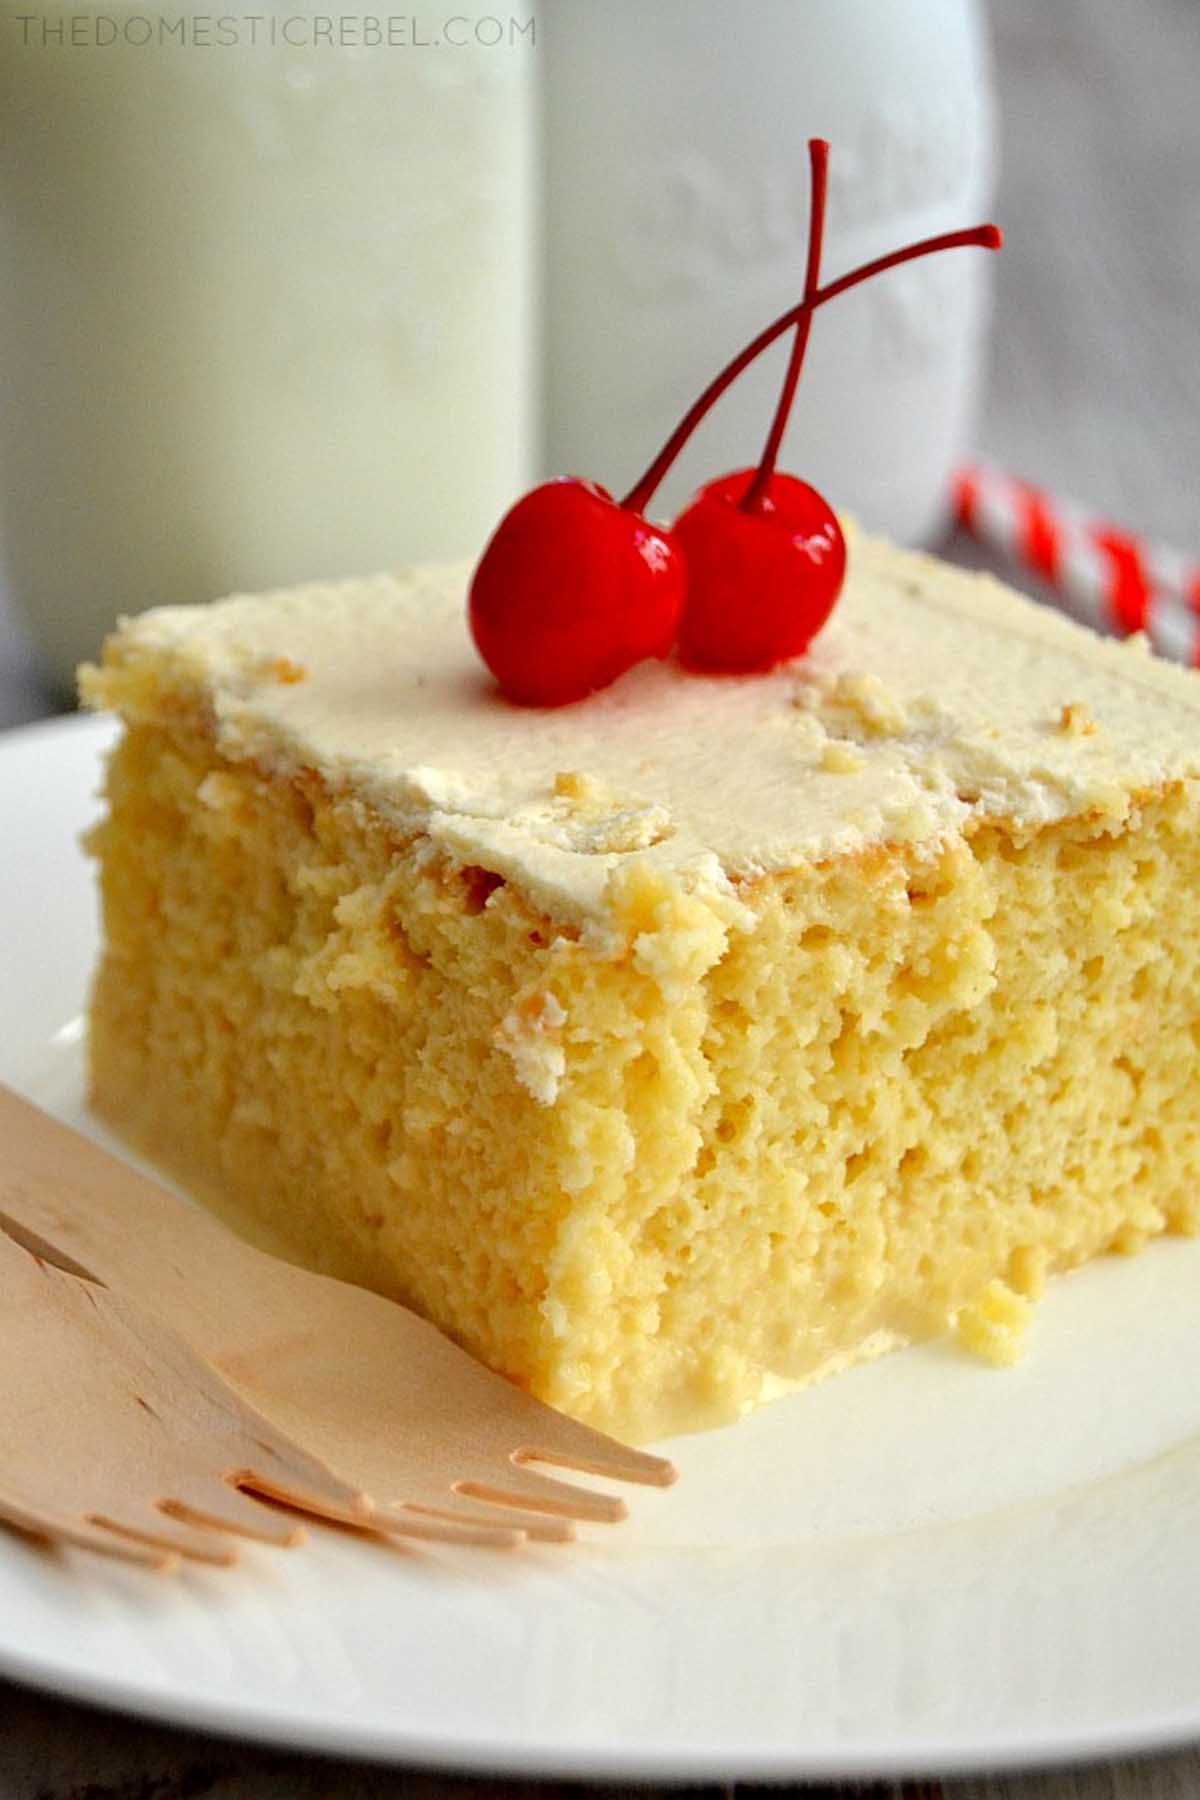 10 Easy Tres Leches Cake Recipes How To Make Tres Leches